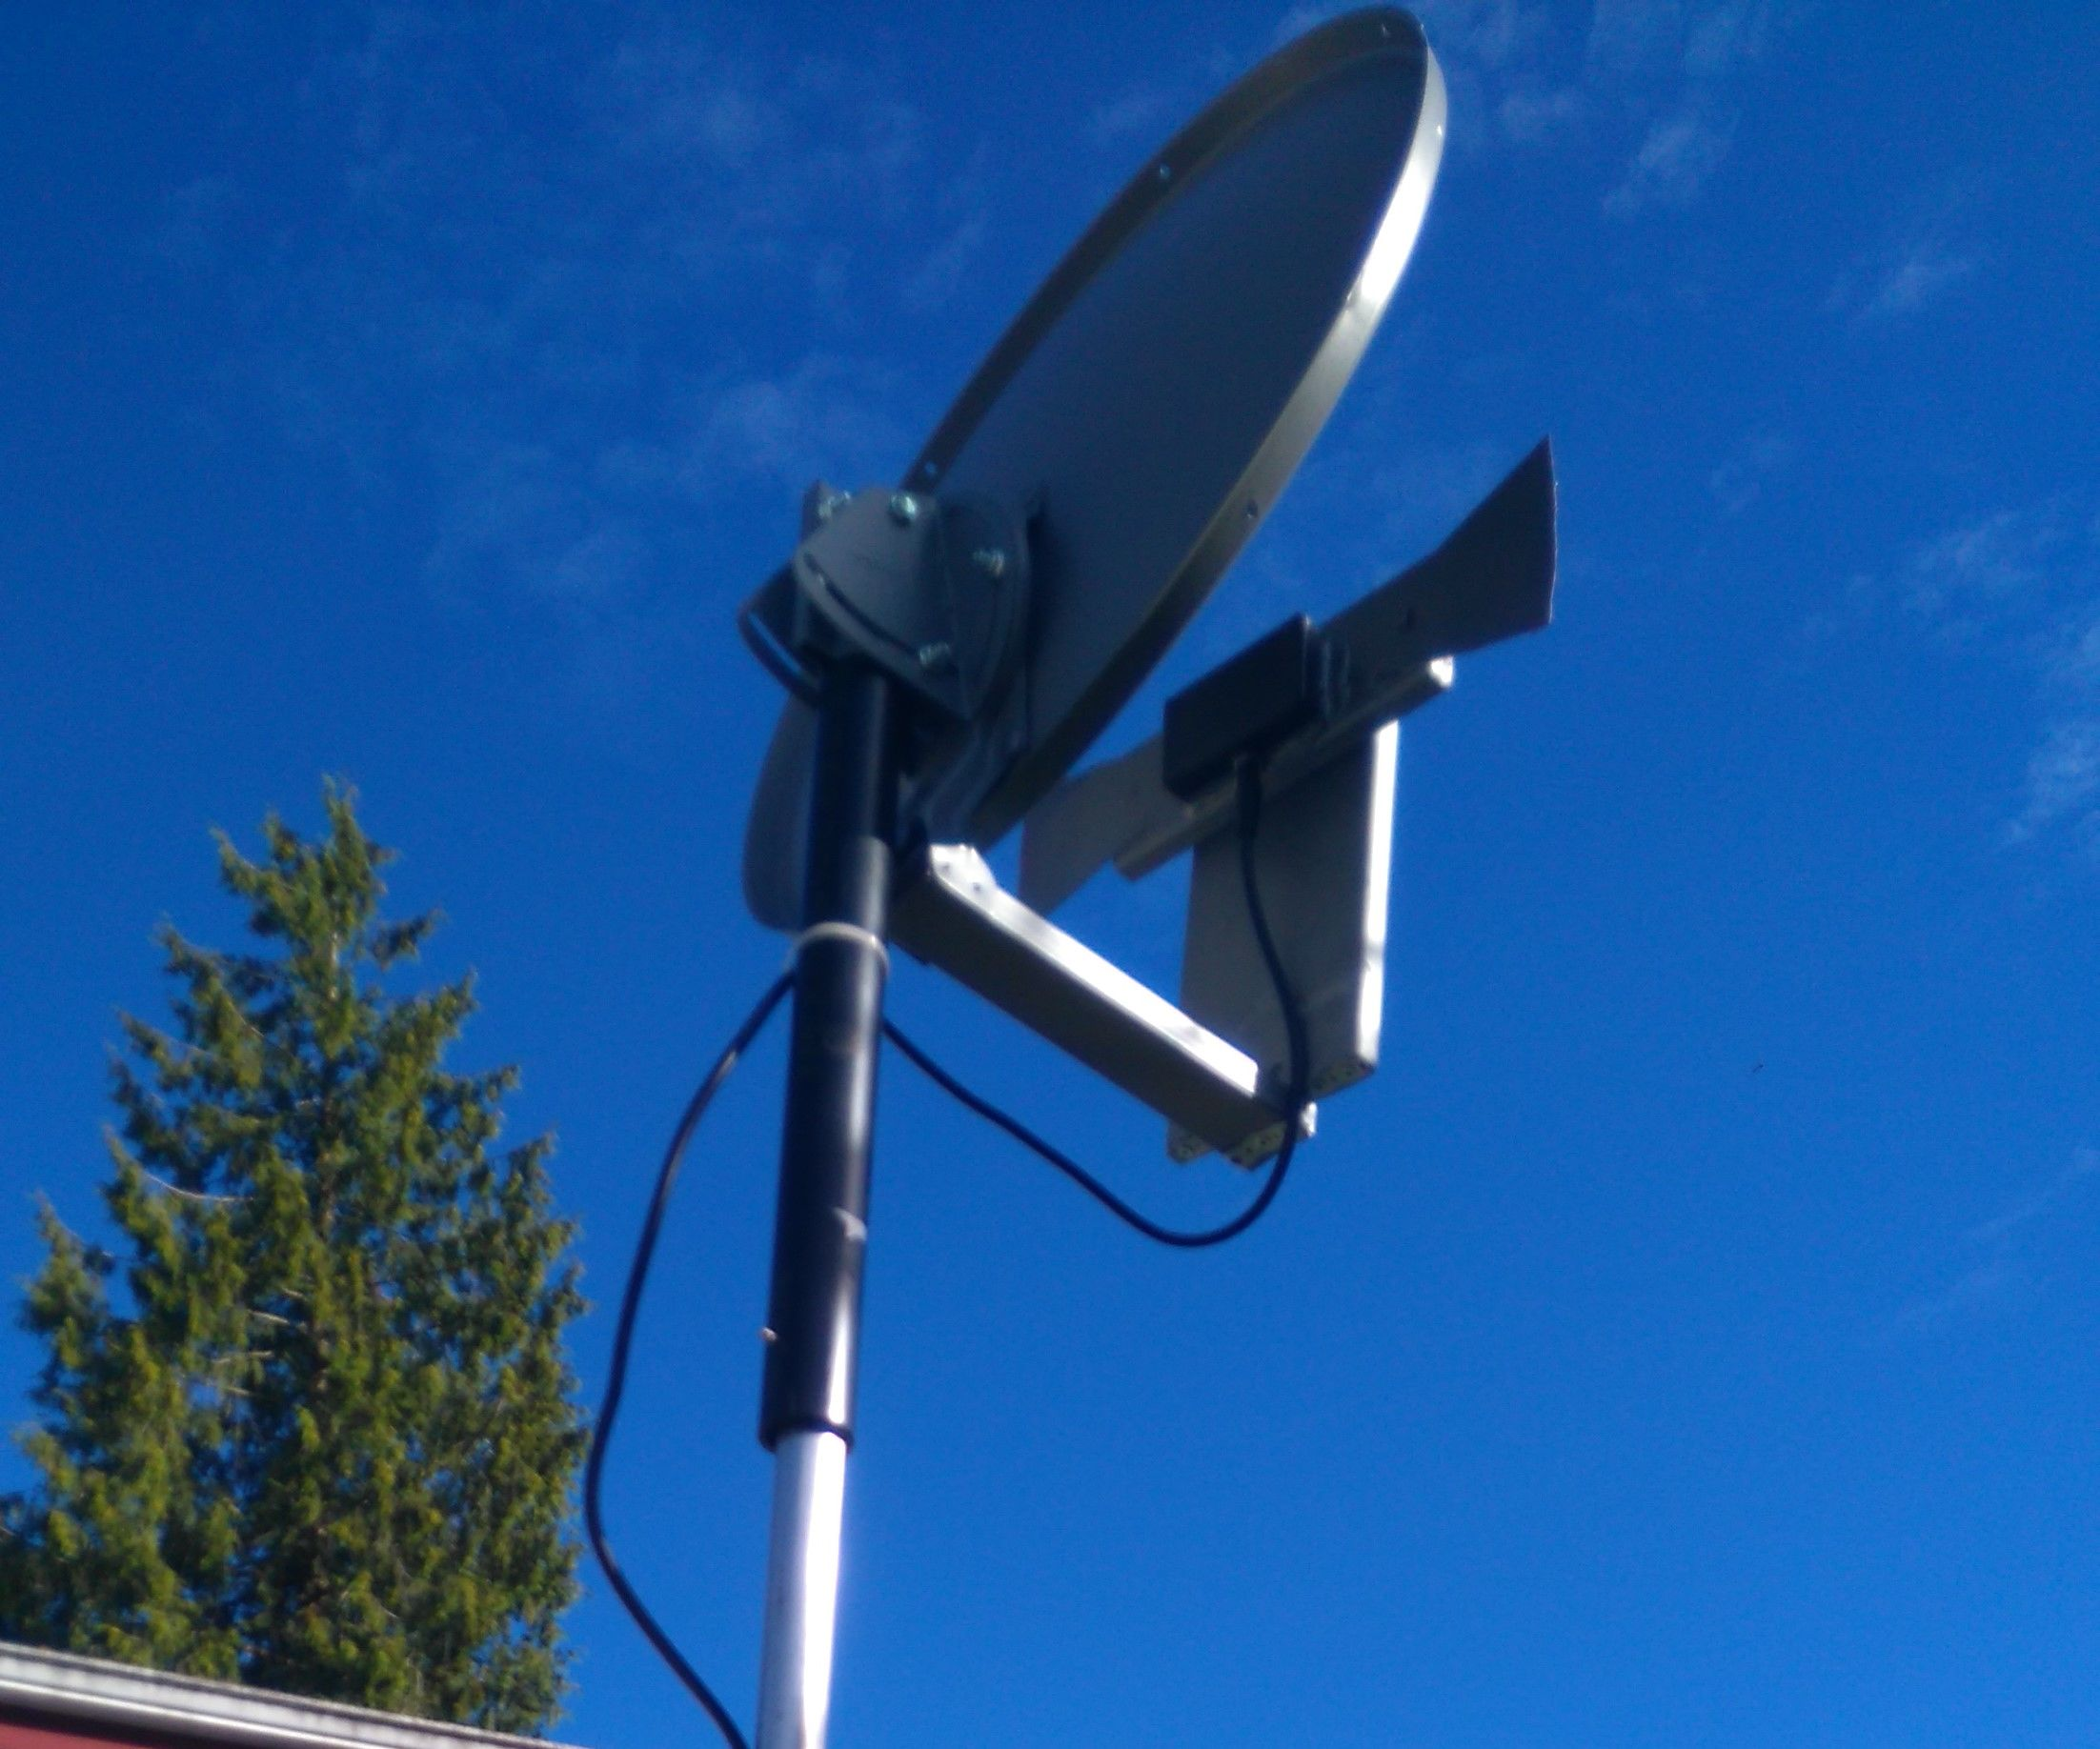 Make a High Performance TV Antenna From a Satellite Dish and